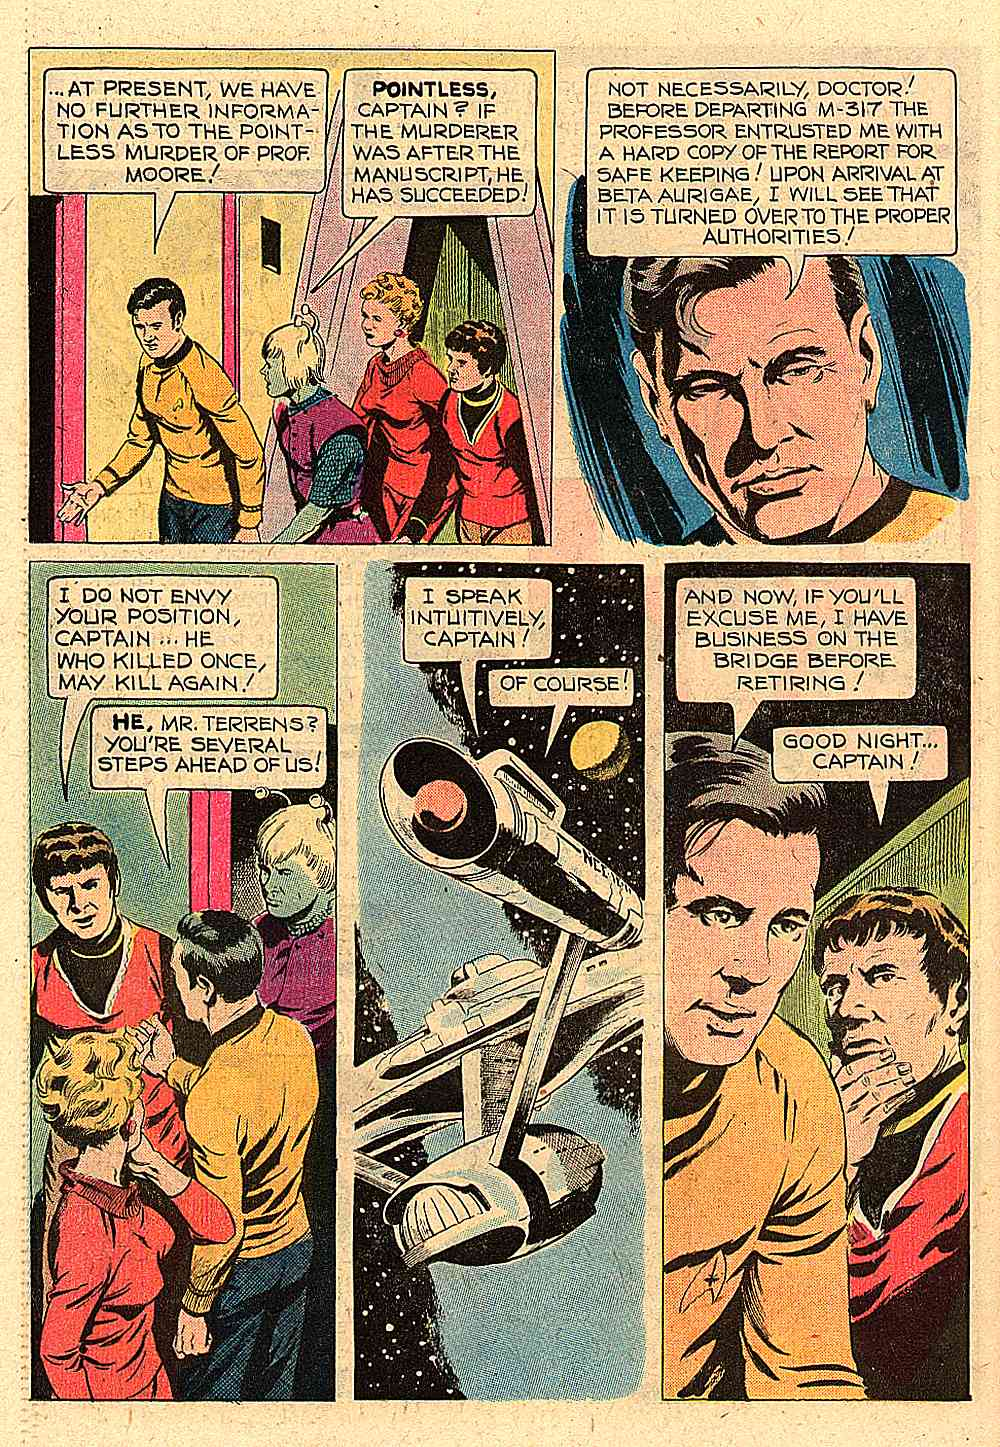 Star Trek (1967) #48 #48 - English 18